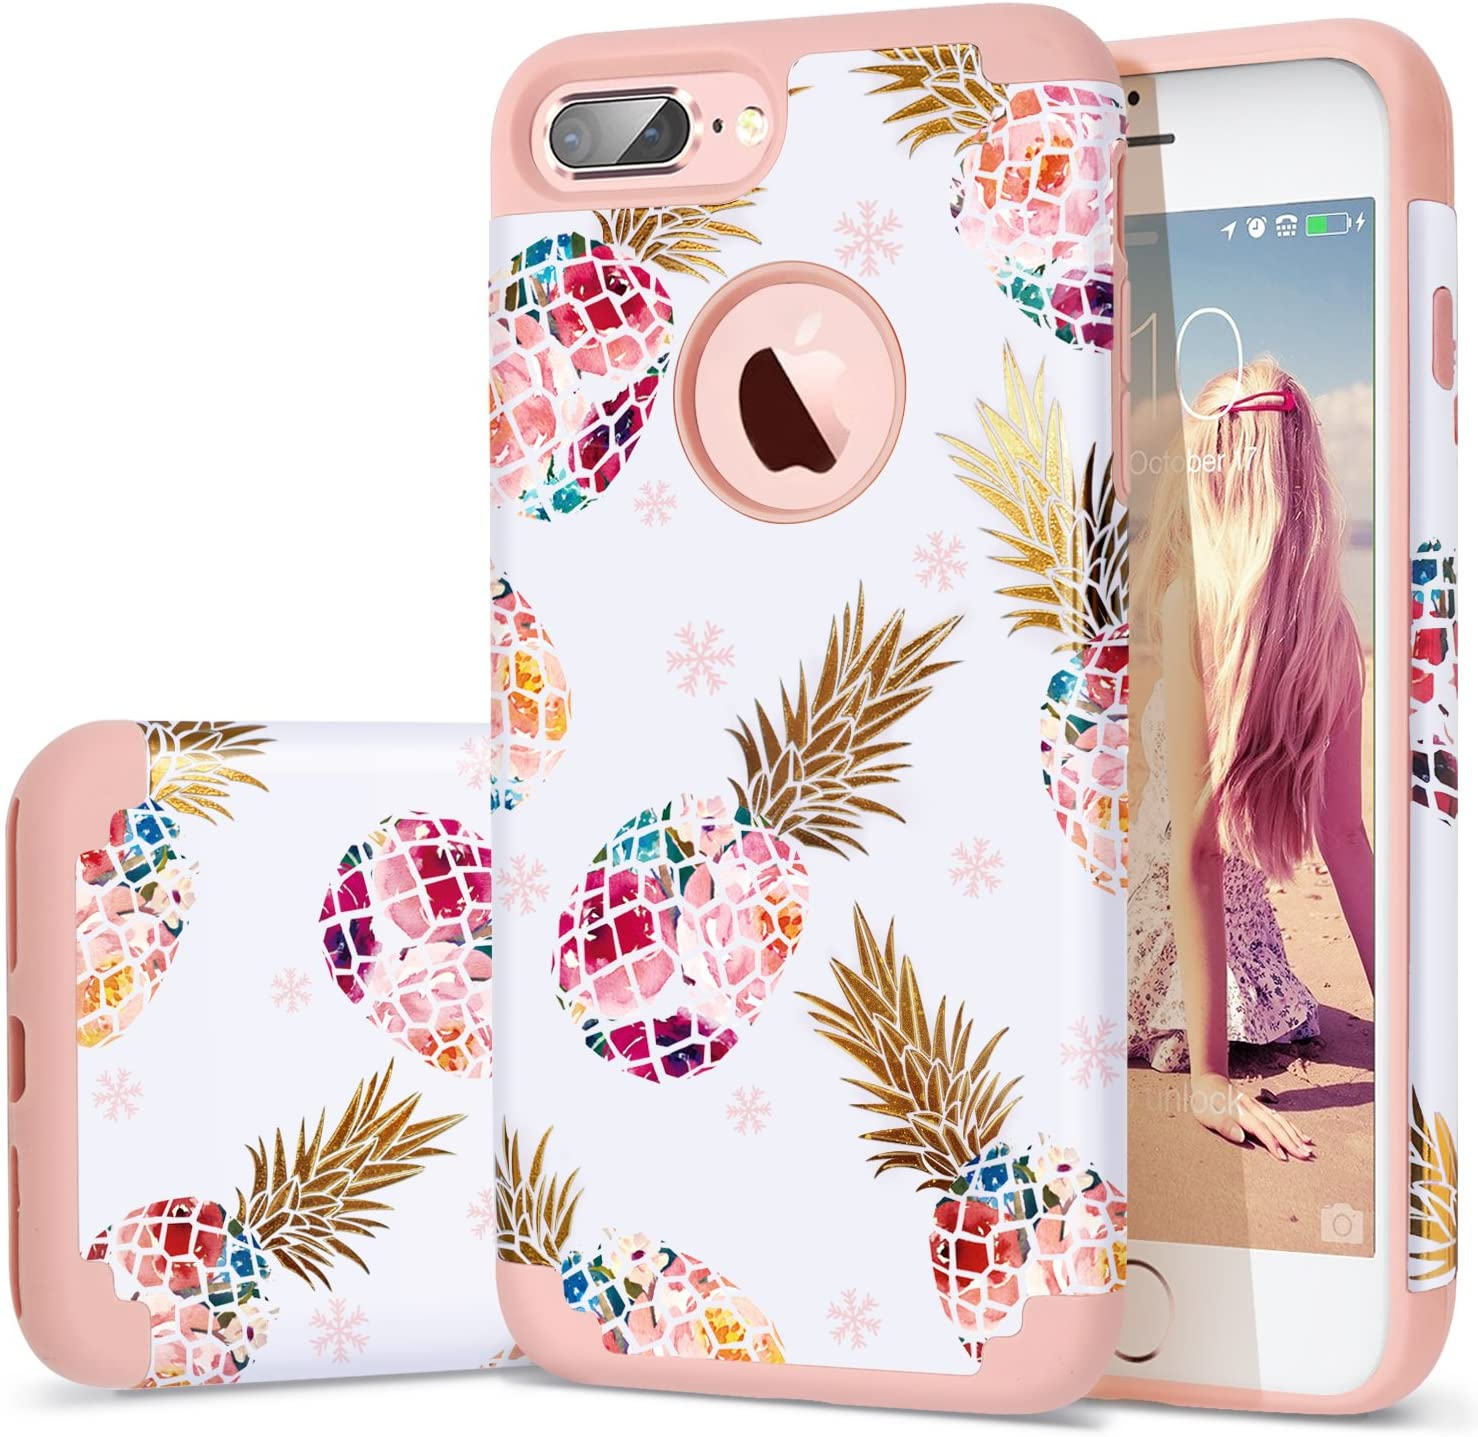 Fingic iPhone 7 Plus Case,iPhone 8 Plus Case Pineapple, Floral Pineapple Ultra Slim Case Hard PC Soft Rubber Anti-Scratch Shockproof Protective Case Cover for iPhone 7/8 Plus (Pink02)